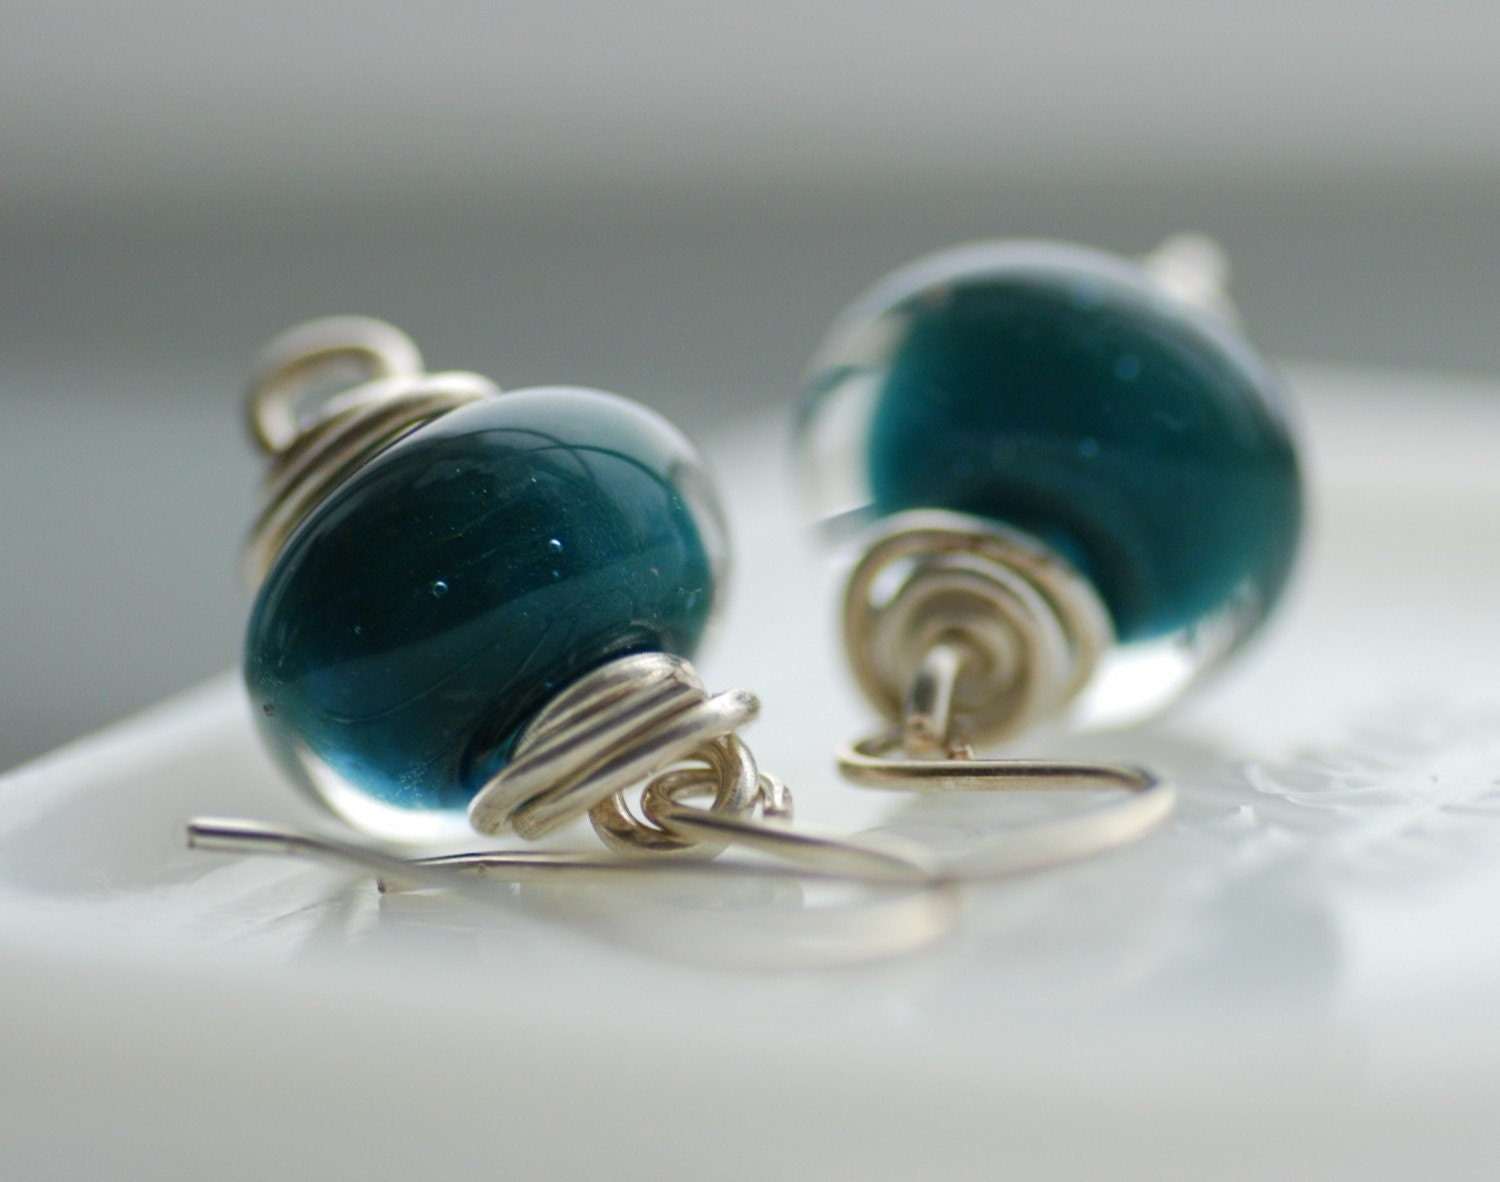 Earrings,  Turquoise Teal Boro Glass and Sterling Silver - One of a Kind - Caribbean